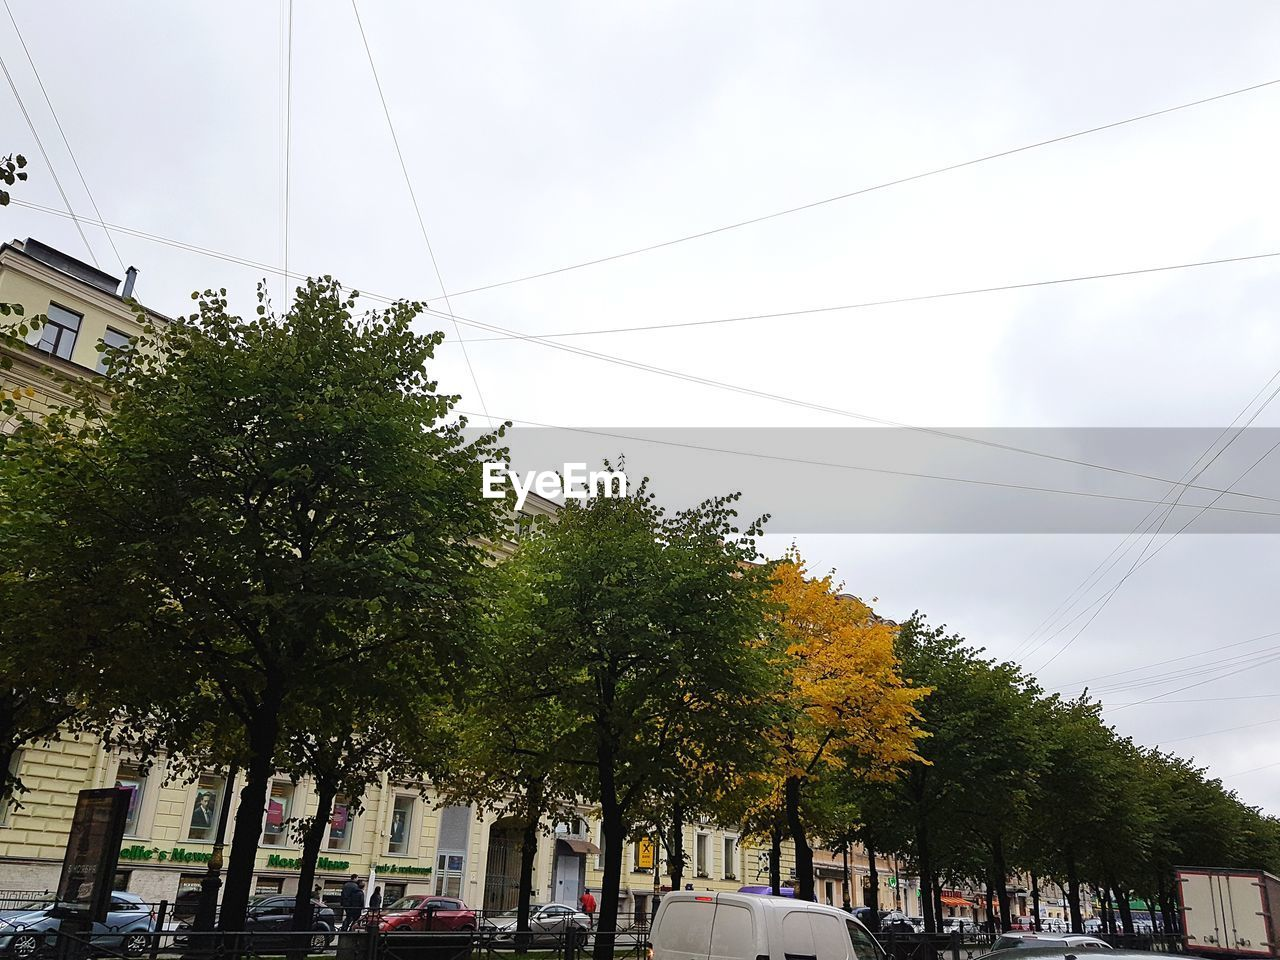 tree, sky, plant, cable, transportation, mode of transportation, nature, city, motor vehicle, architecture, day, car, electricity, street, power line, building exterior, land vehicle, road, built structure, cloud - sky, outdoors, no people